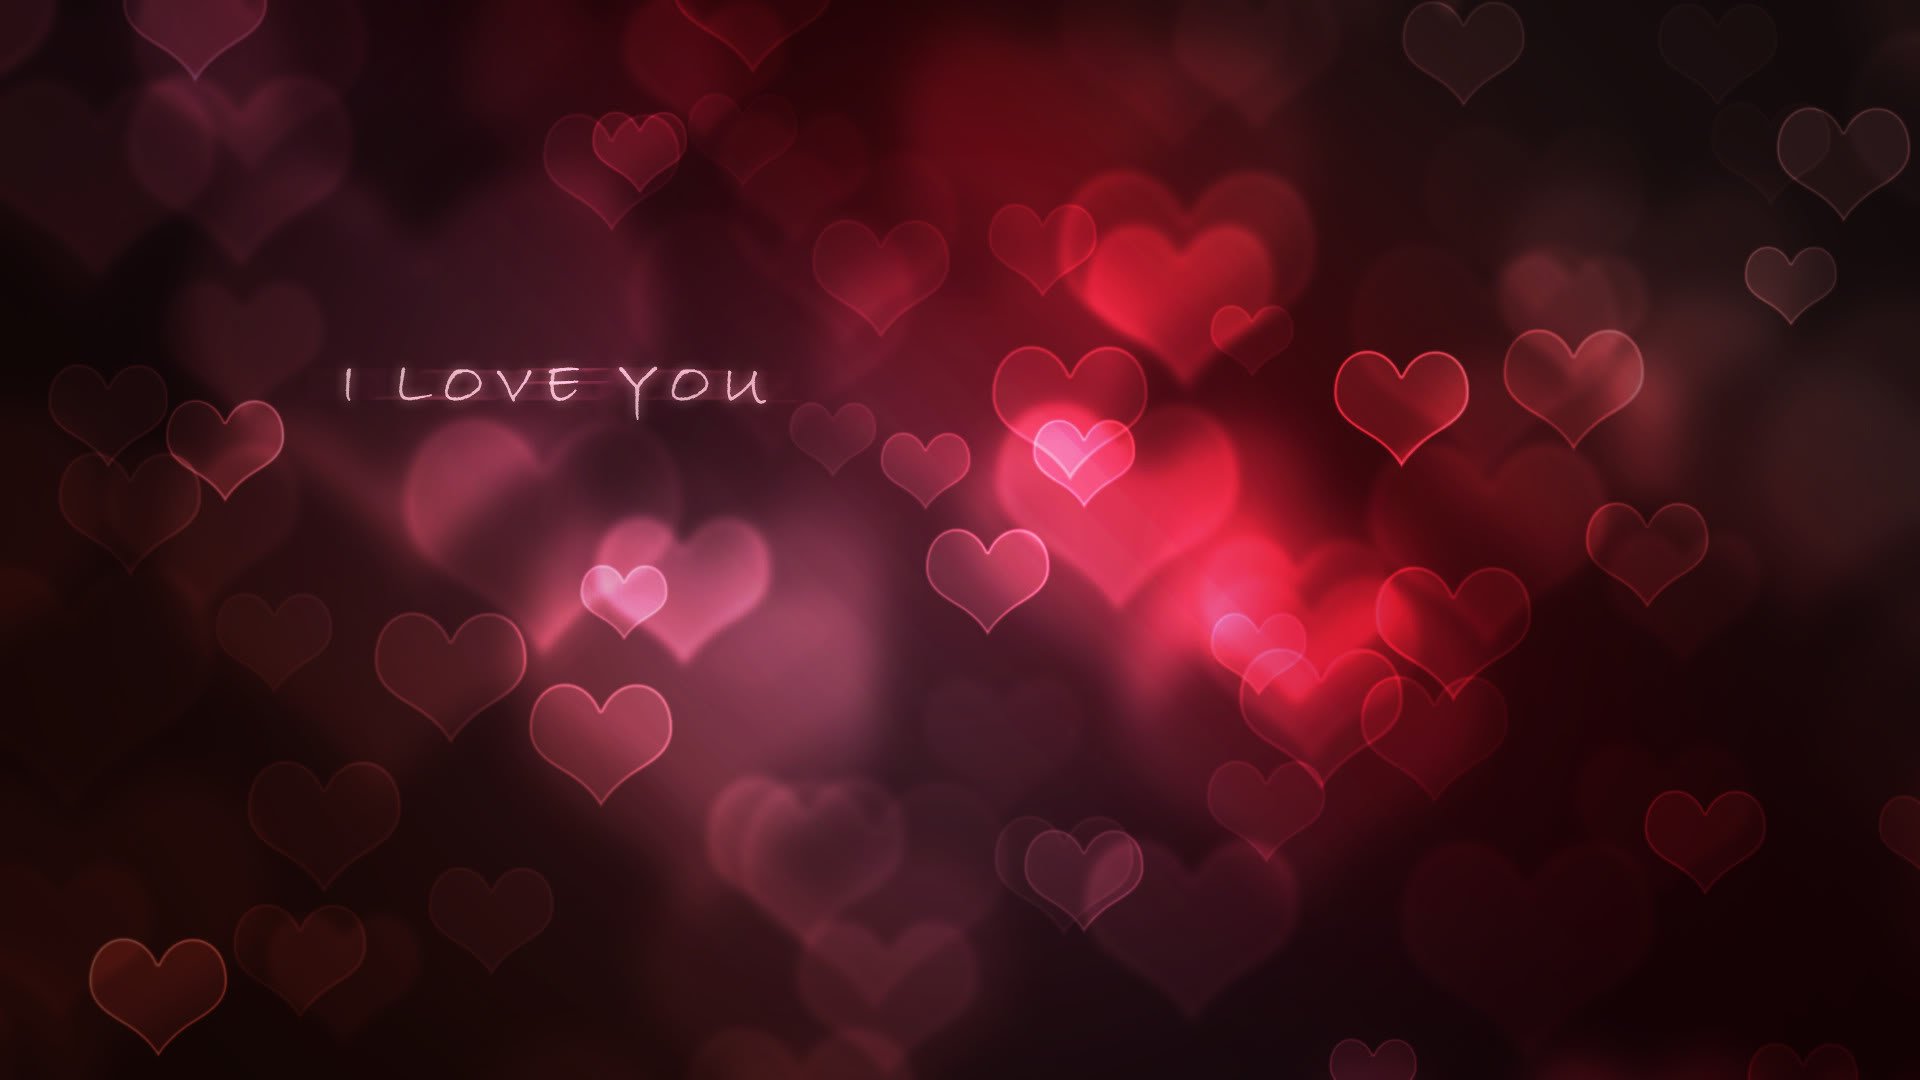 Love Wallpaper Hd 2014 : 25+ Sentimental I Love You Pictures PicsHunger